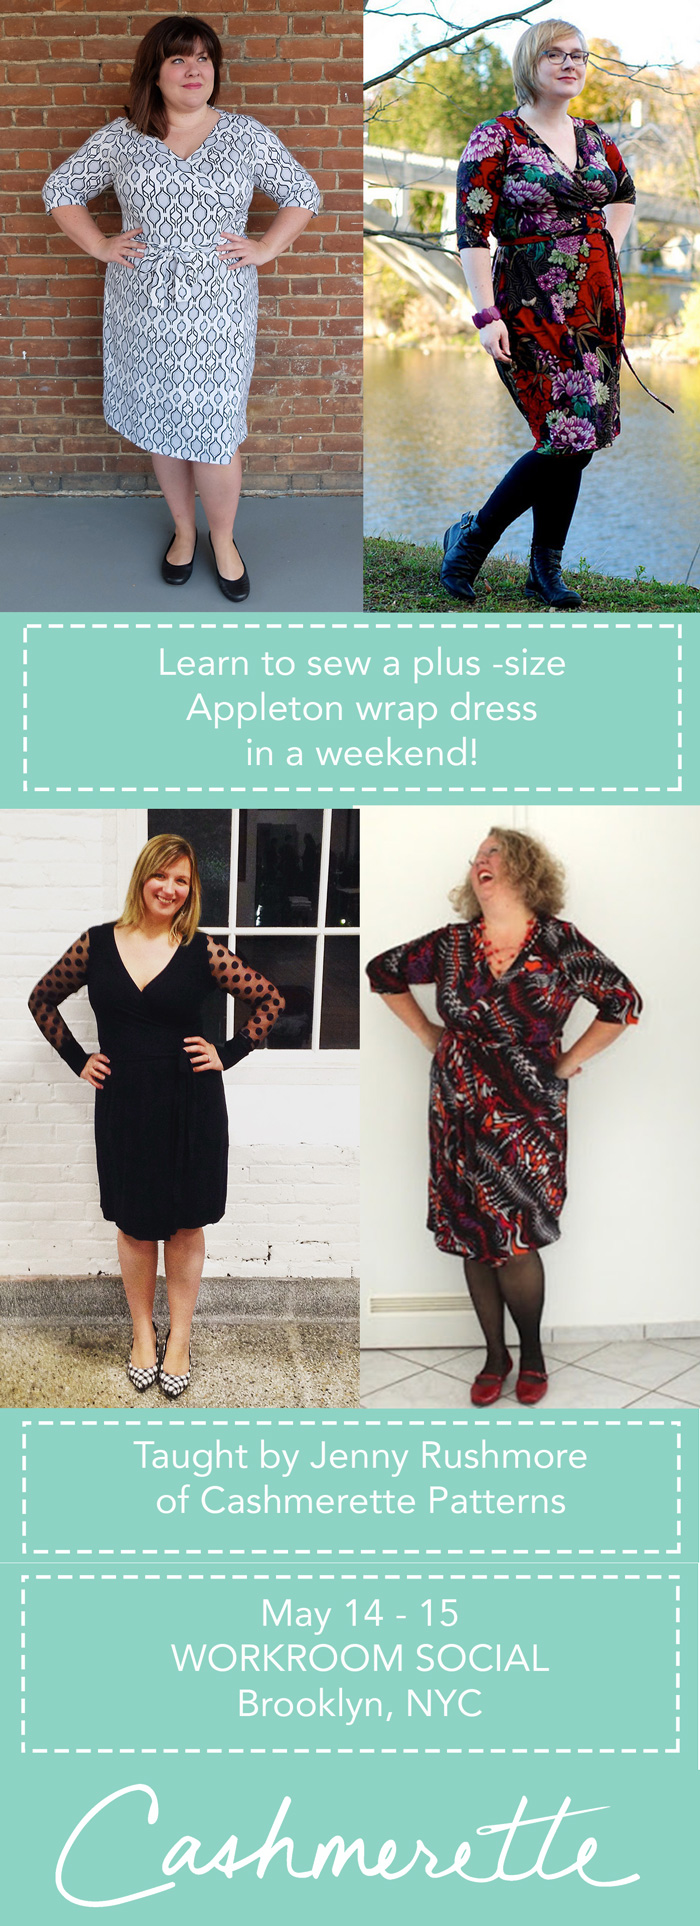 Learn to sew a wrap dress with Cashmerette in NYC